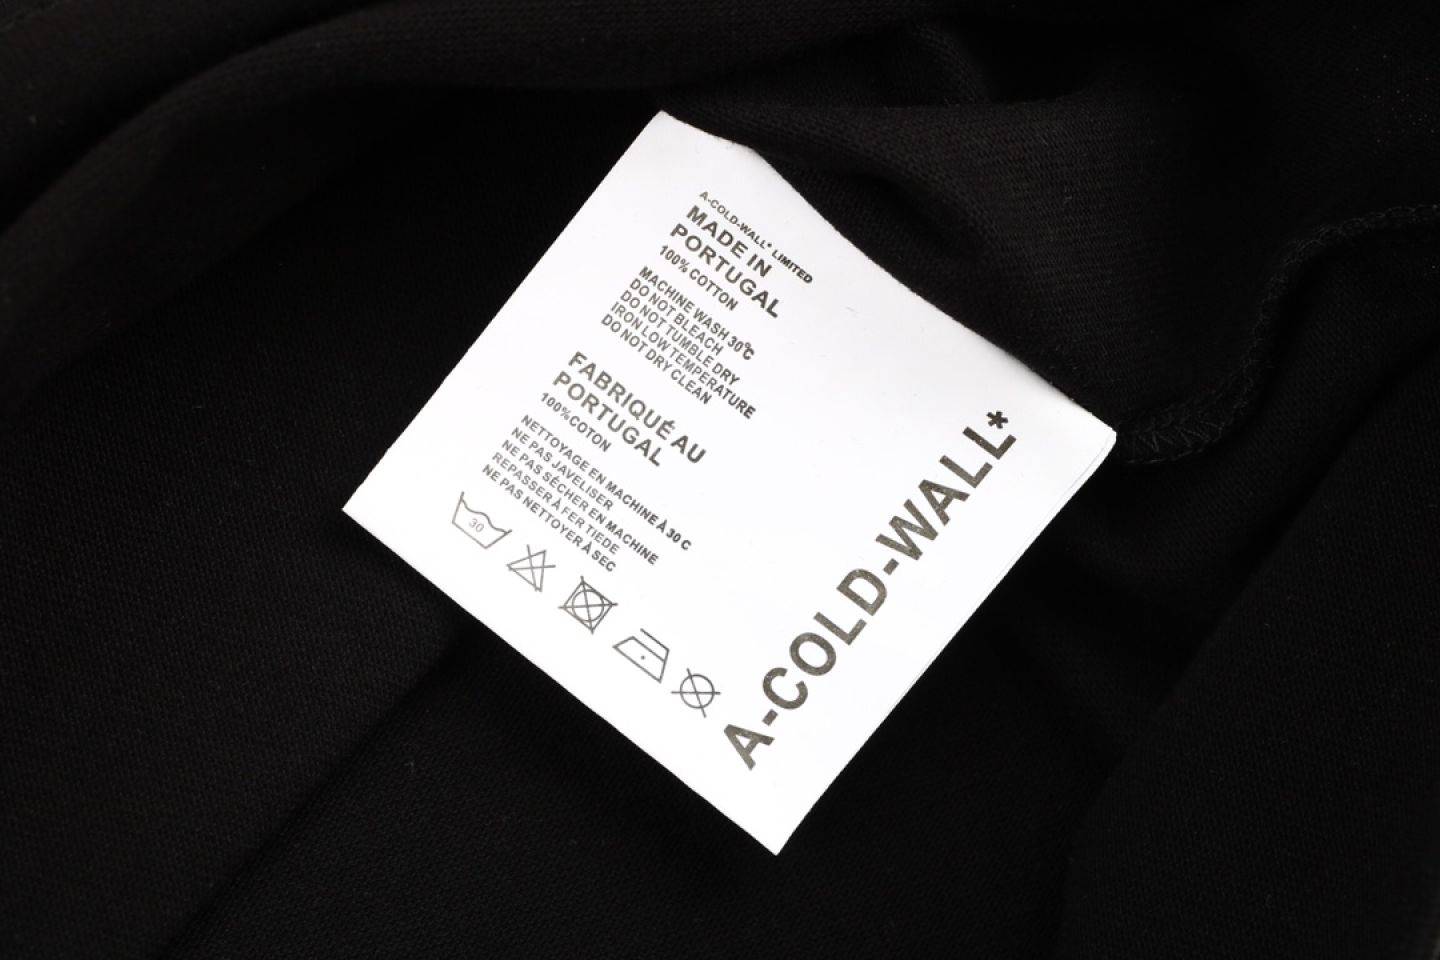 Shirt A-COLD-WALL cold wall oil painting photo short sleeve black 3 a_cold_wall_cold_wall_oil_painting_photo_short_sleeve_black__3